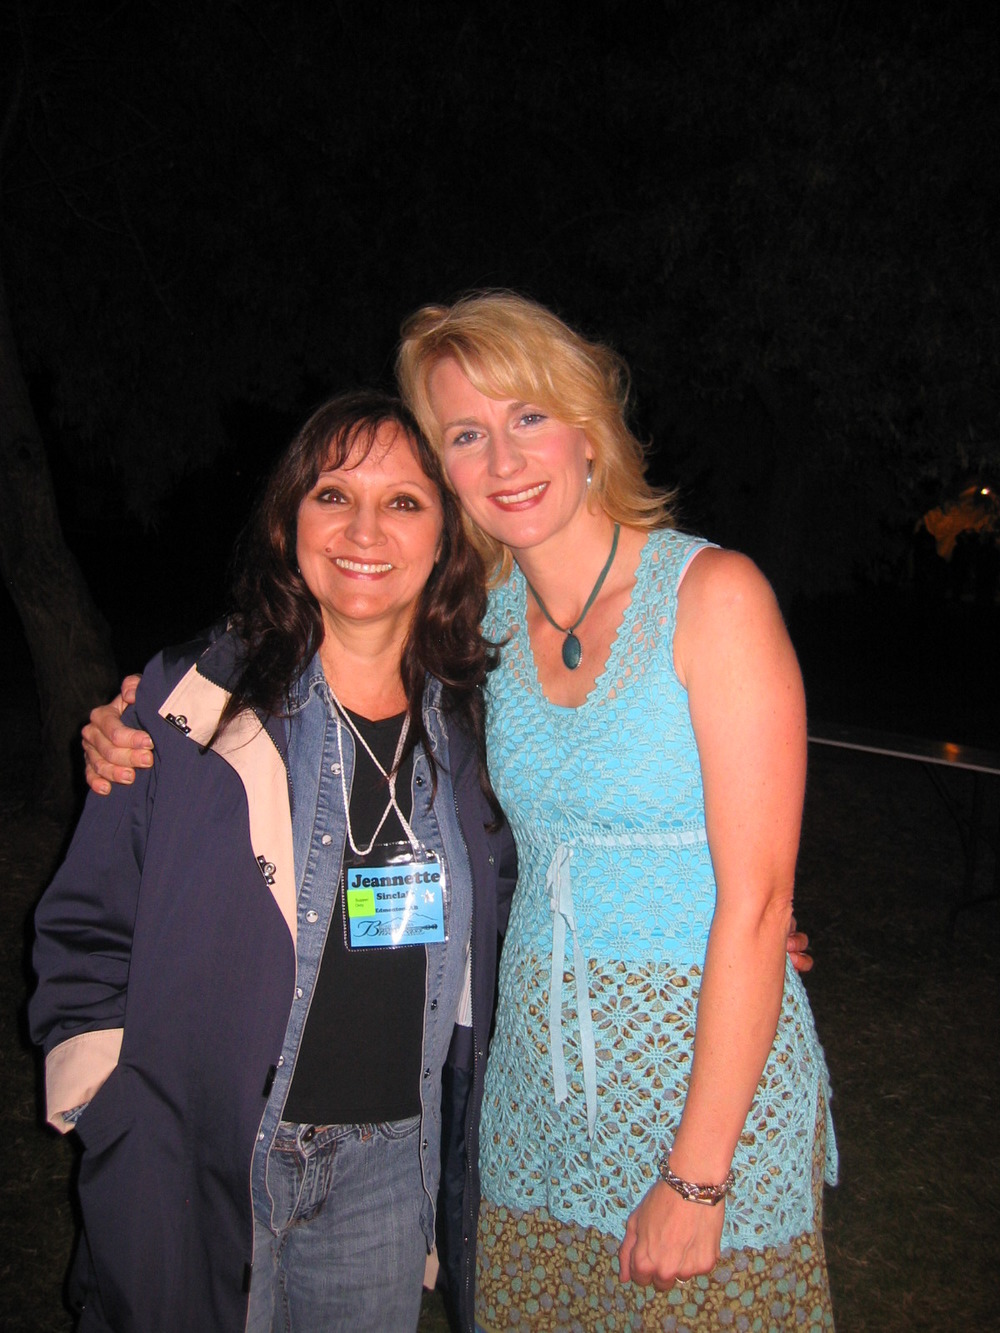 Jeannette with Sally Jones August 19, 2008